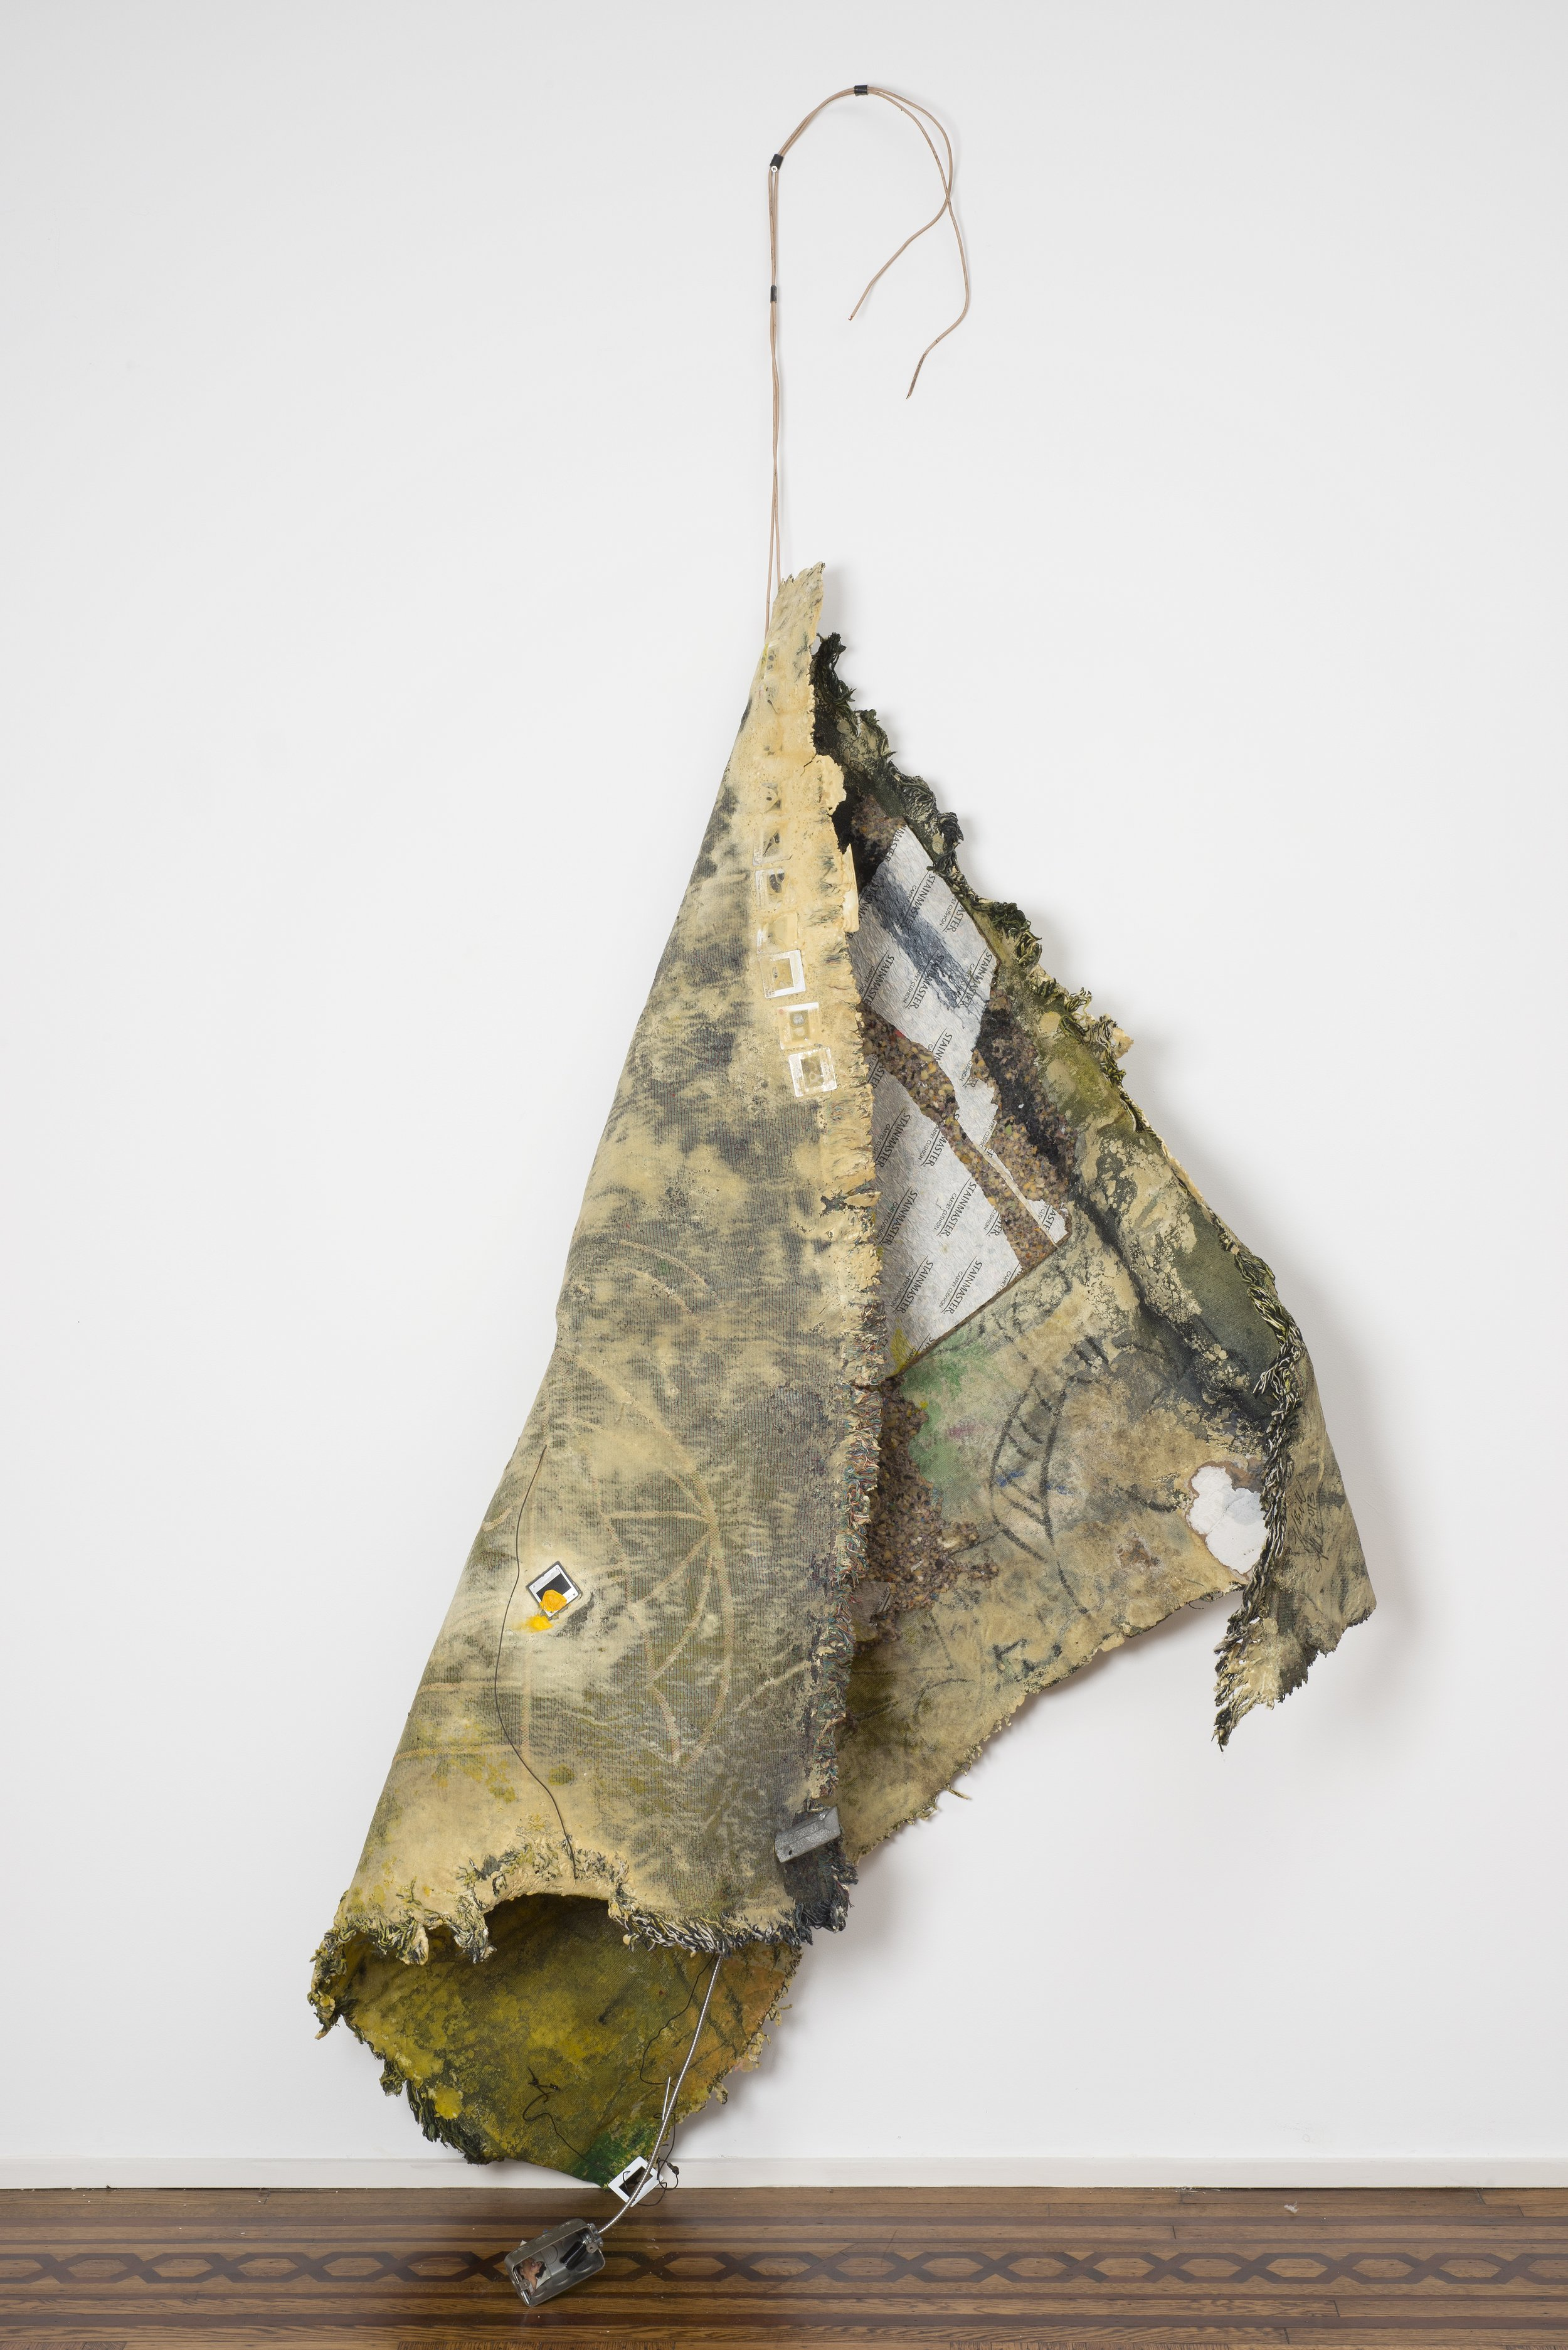 """Akashic 1 , 2013, Custom woven tapestry, polyurethane foam, acrylic, glass slides, cards, rope and wire, overall installed dimensions variable, 82"""" x 104"""""""